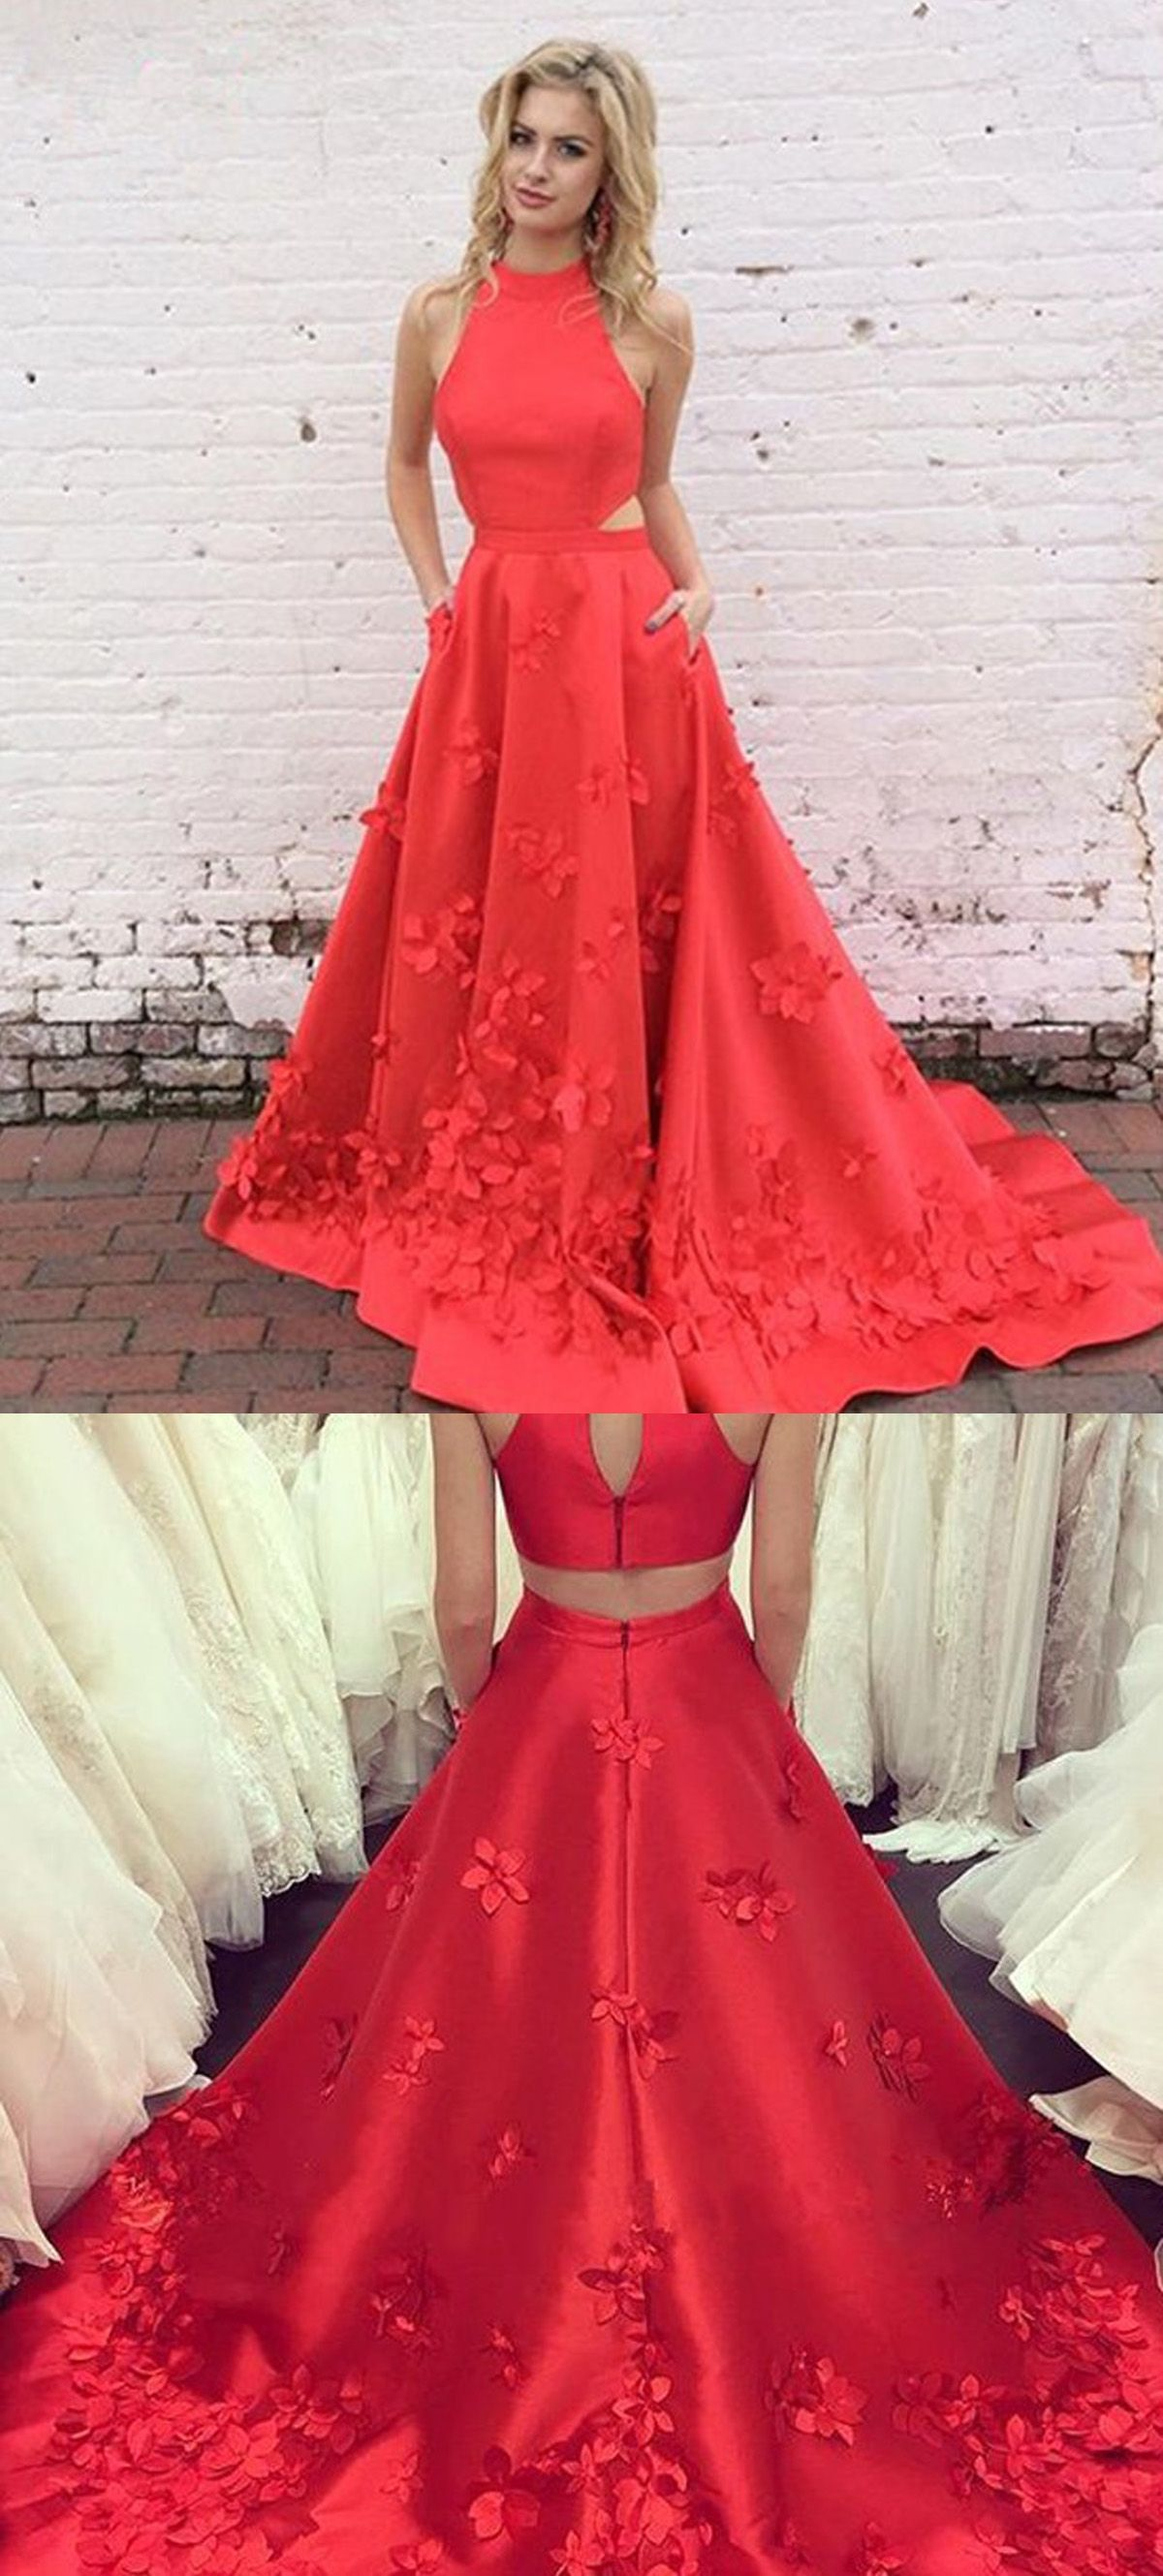 83e2aa892c4 A-Line High Neck Keyhole Back Long Red Satin Prom Dress with ...